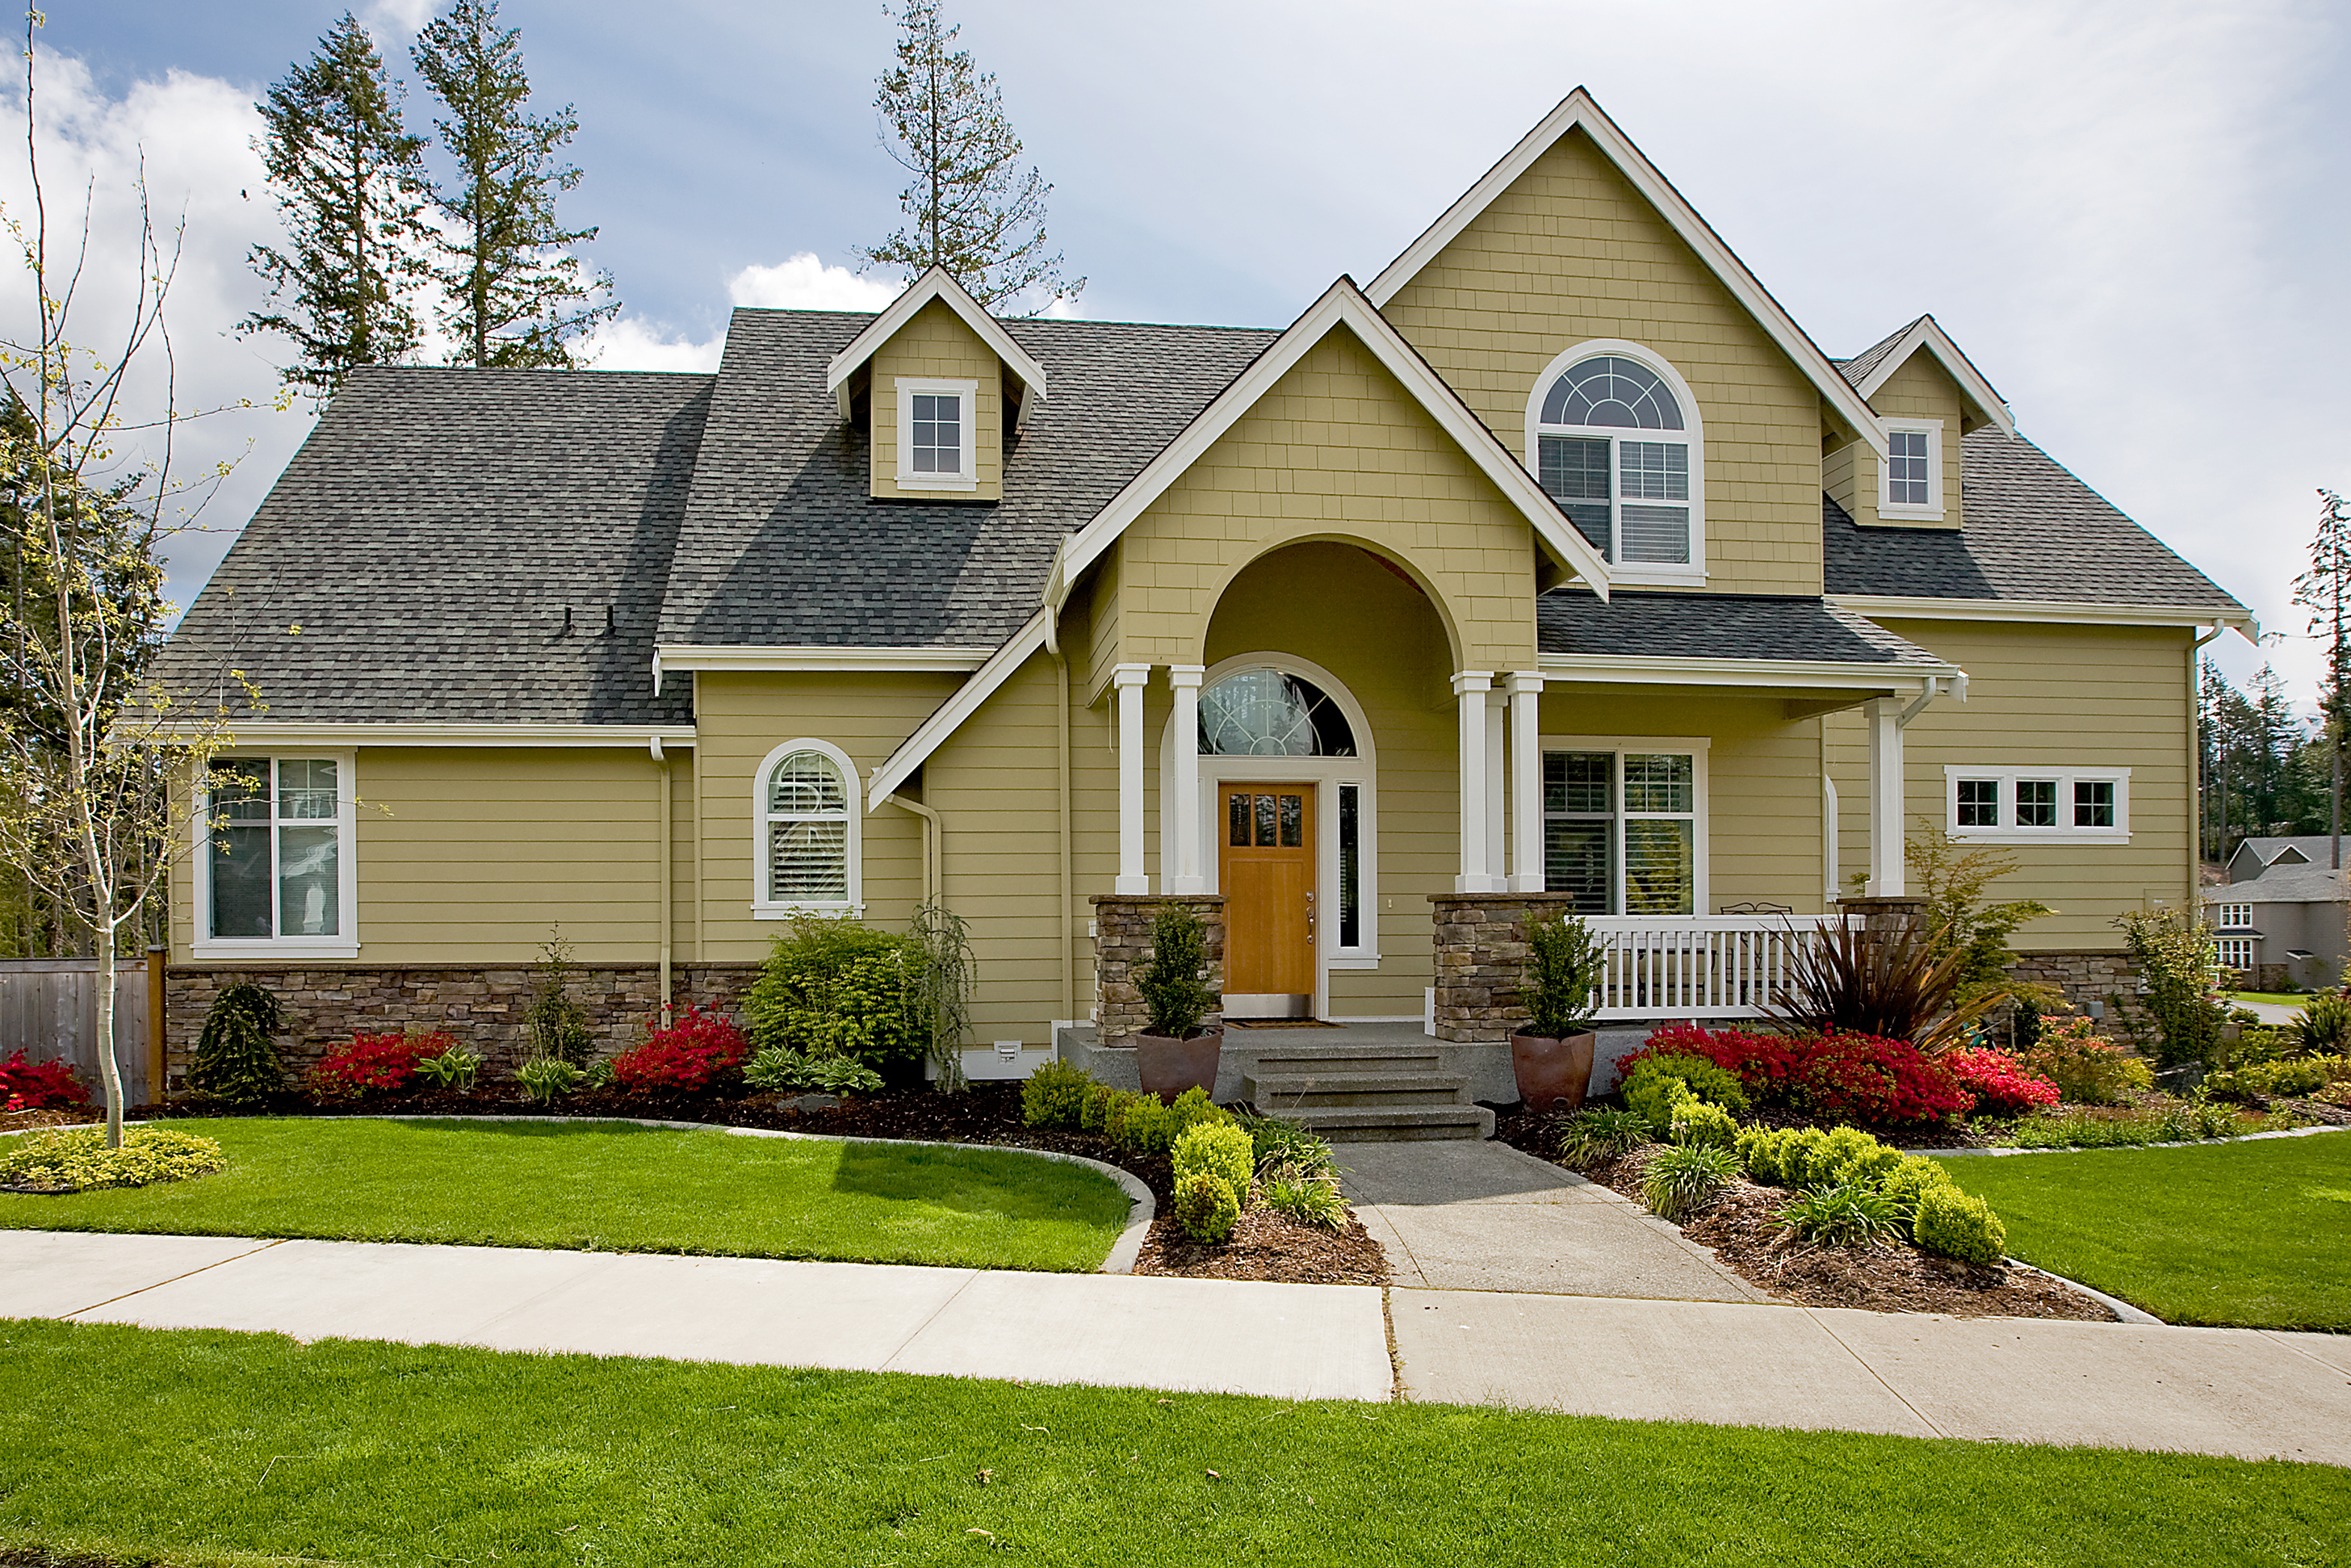 Exterior Cleaning and Pressure Washing Services | Hickory NC ...